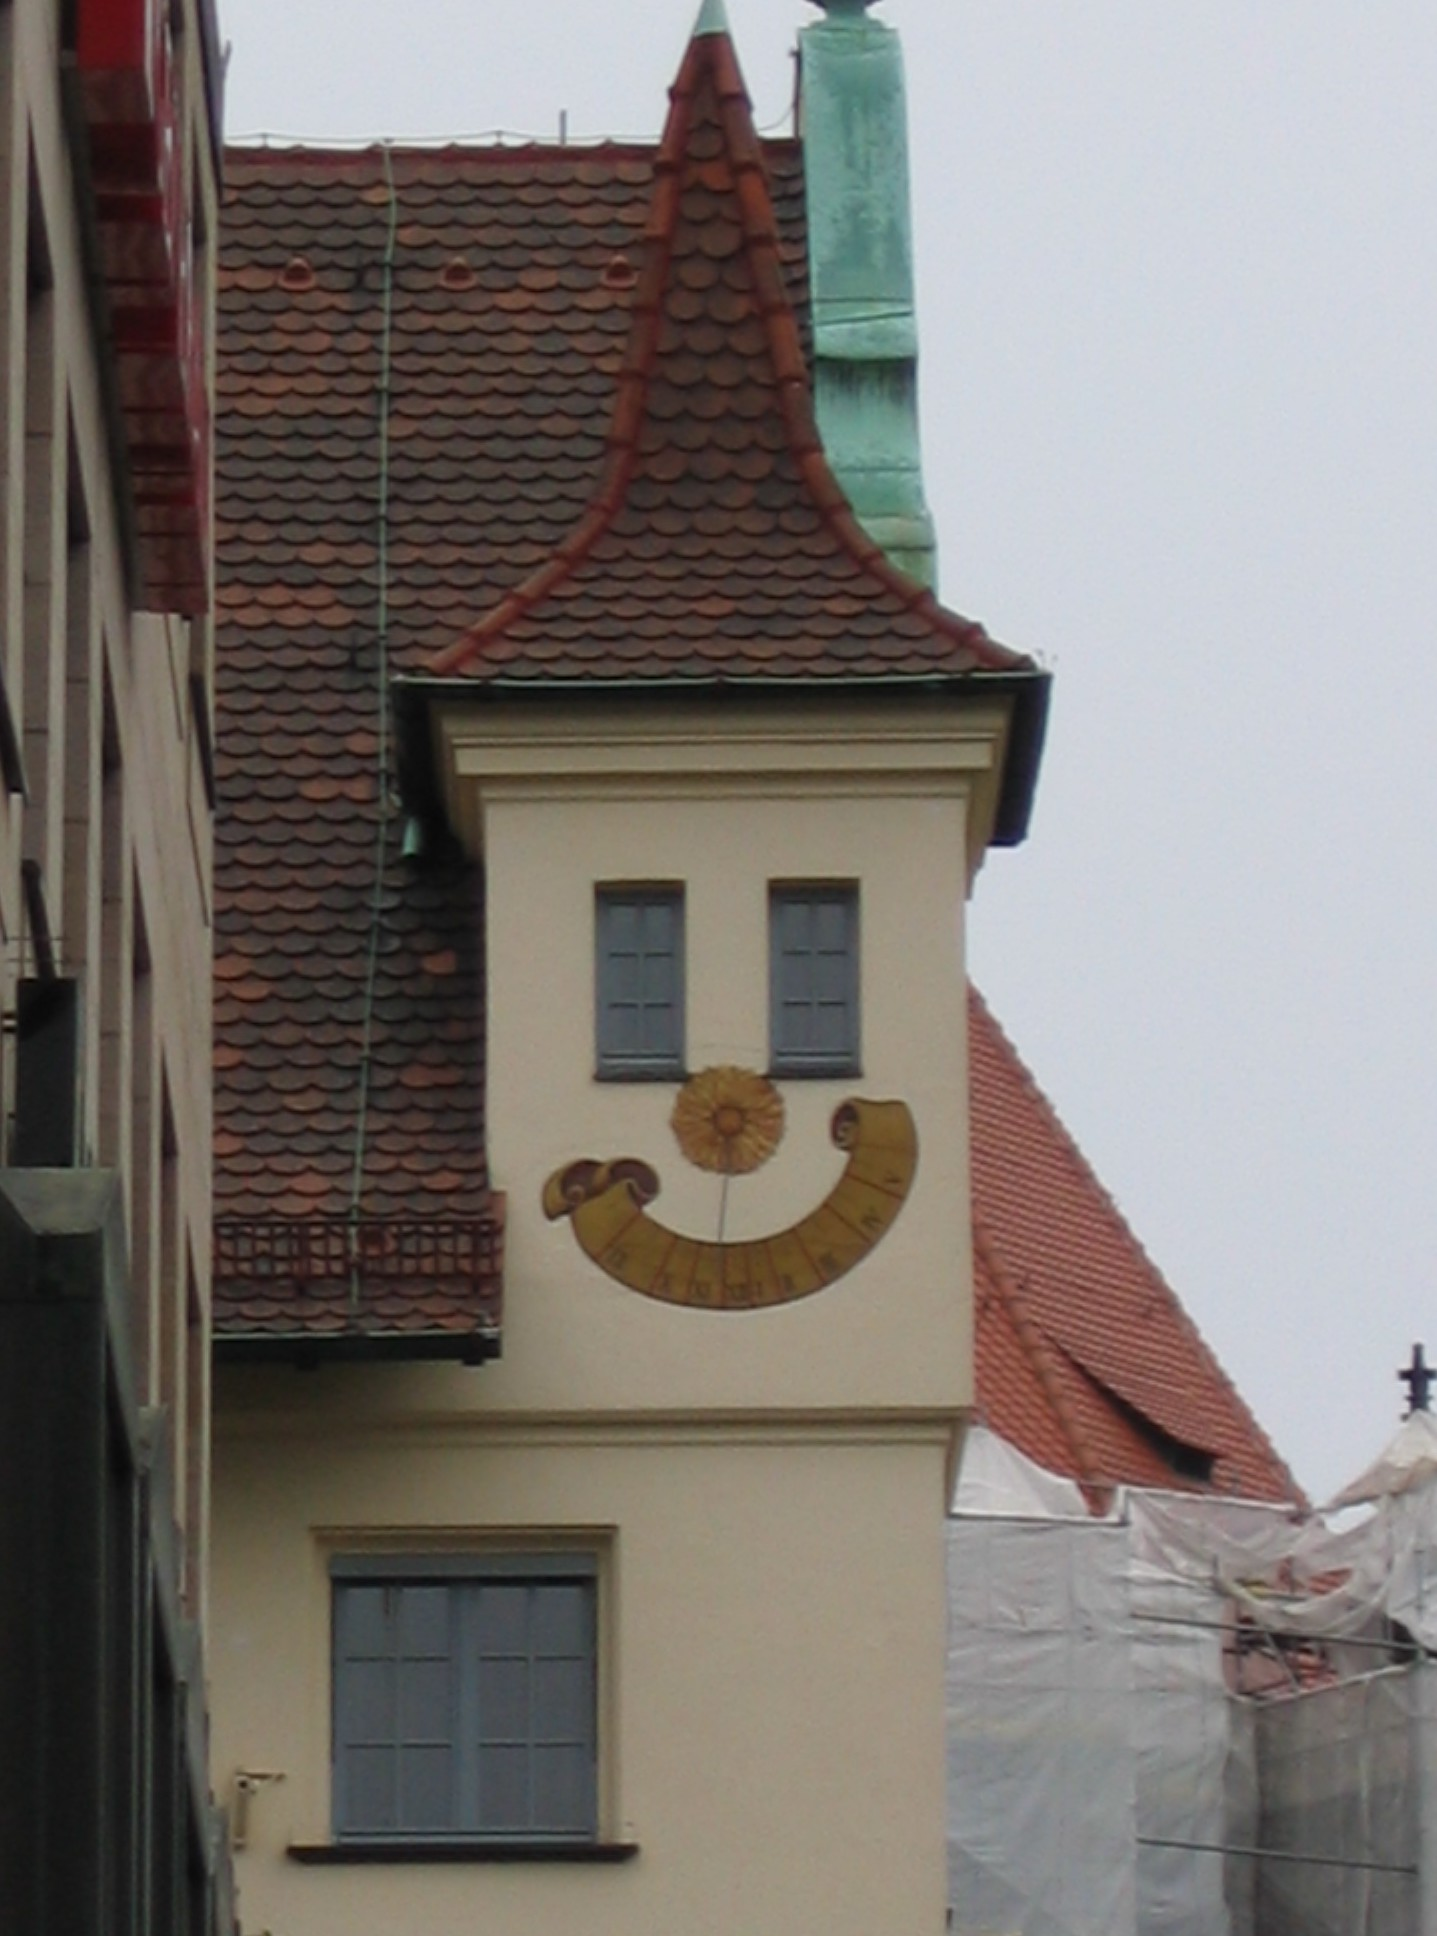 Pareidolie am Bau